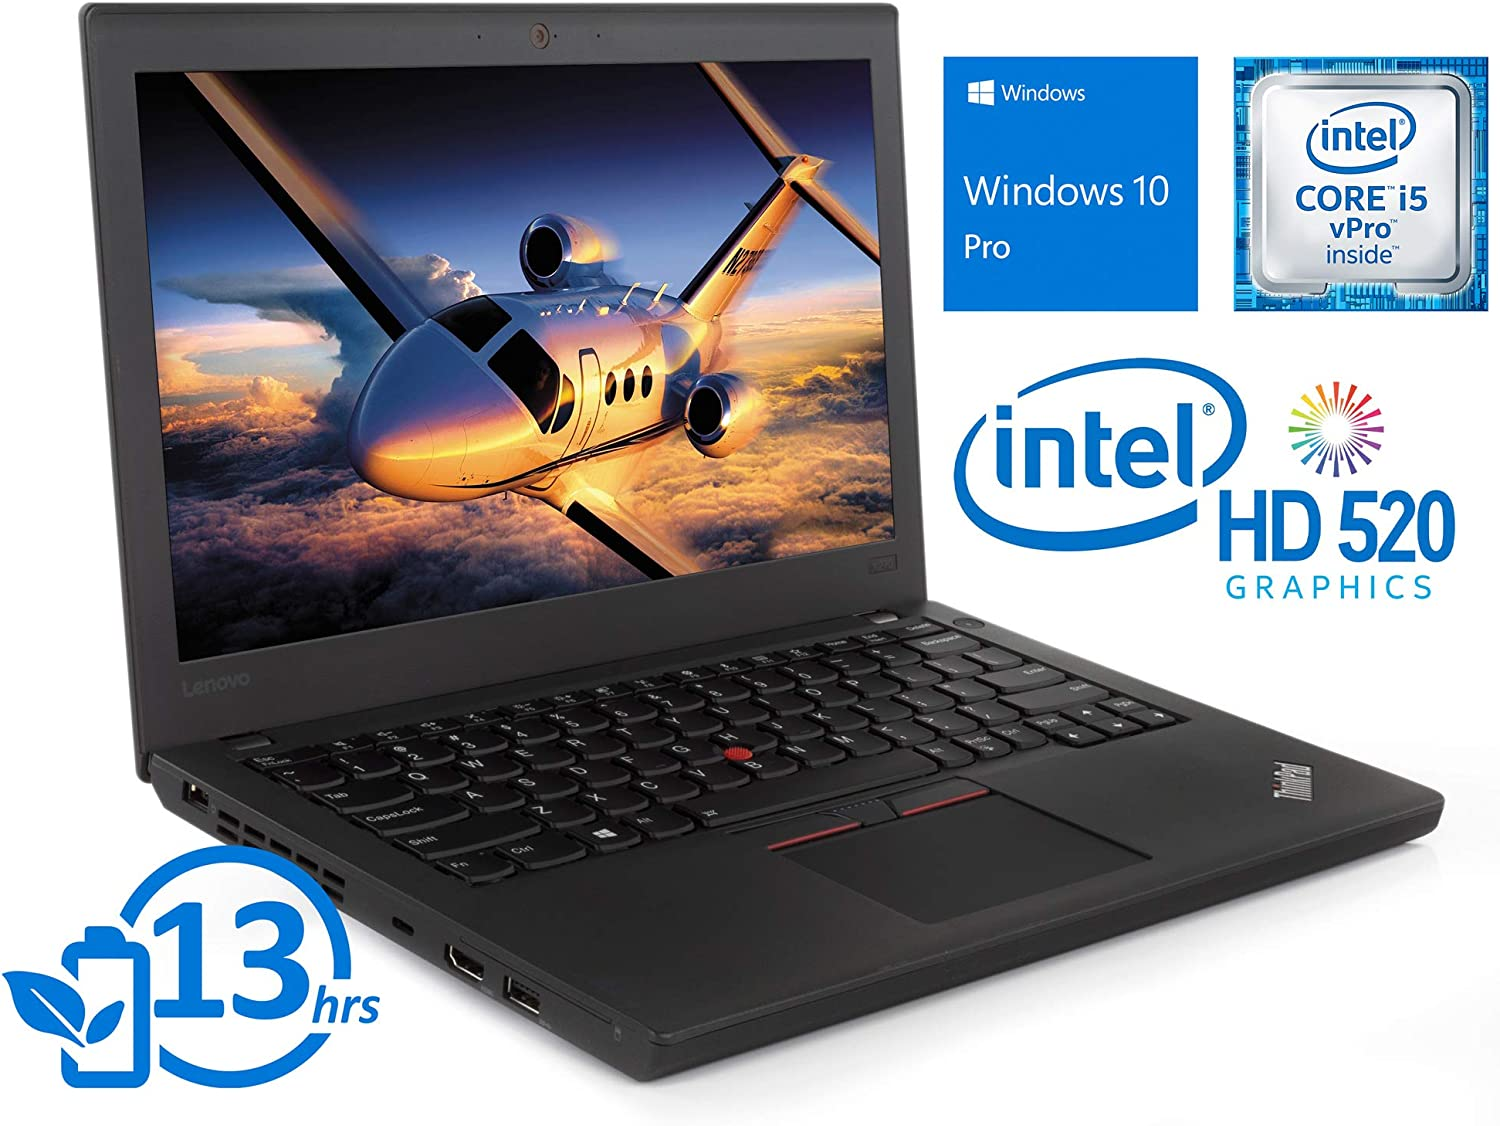 Amazon.com: Lenovo ThinkPad X270 Laptop, 12.5